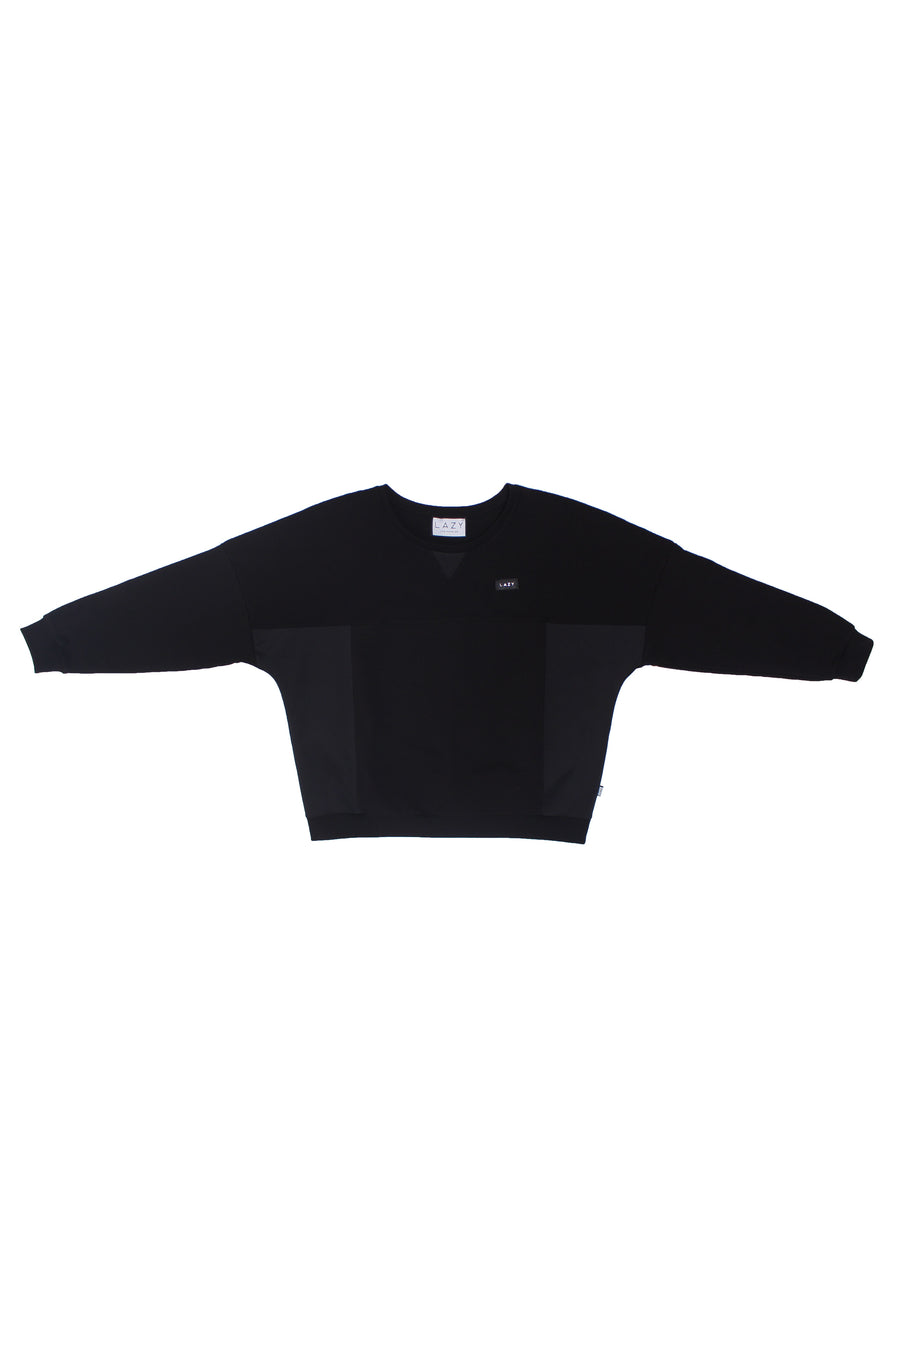 LAZY 1.0 Sweater Black-Tops-Christina Dienst